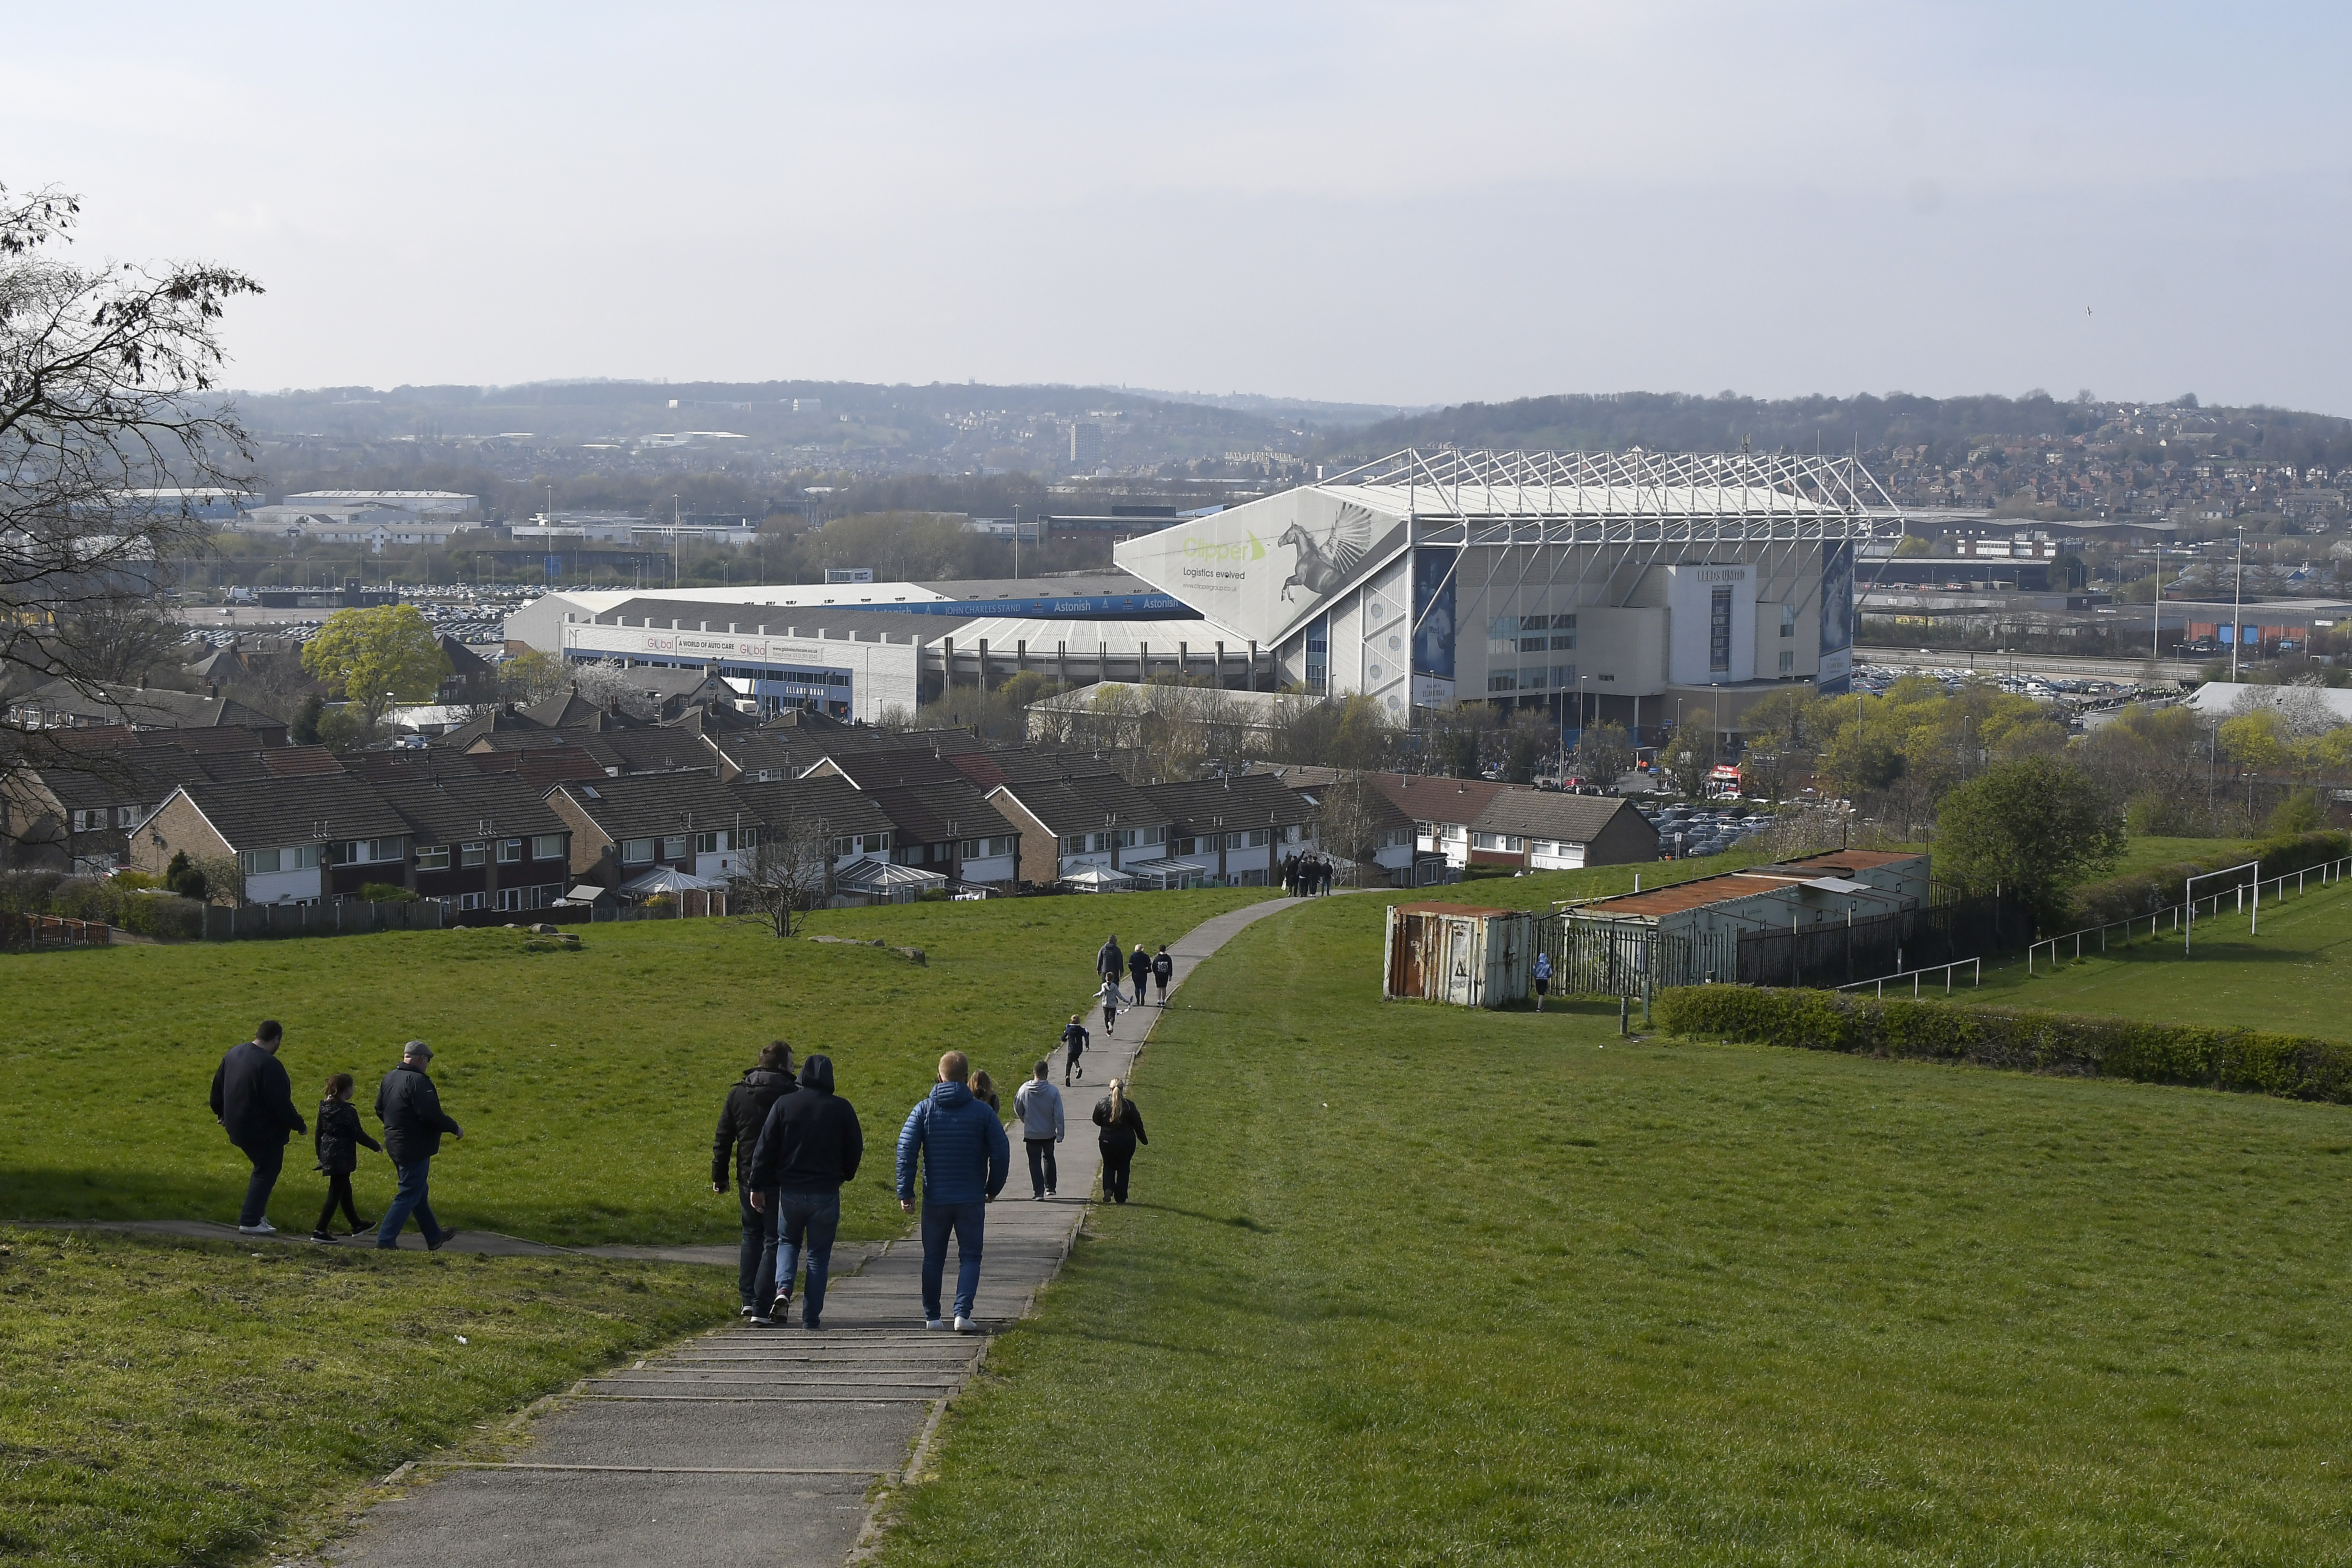 LEEDS, ENGLAND - MARCH 30: Fans walk to Elland Road Stadium prior to the Sky Bet Championship match between Leeds United and Millwall at Elland Road on March 30, 2019 in Leeds, England. (Photo by George Wood/Getty Images)